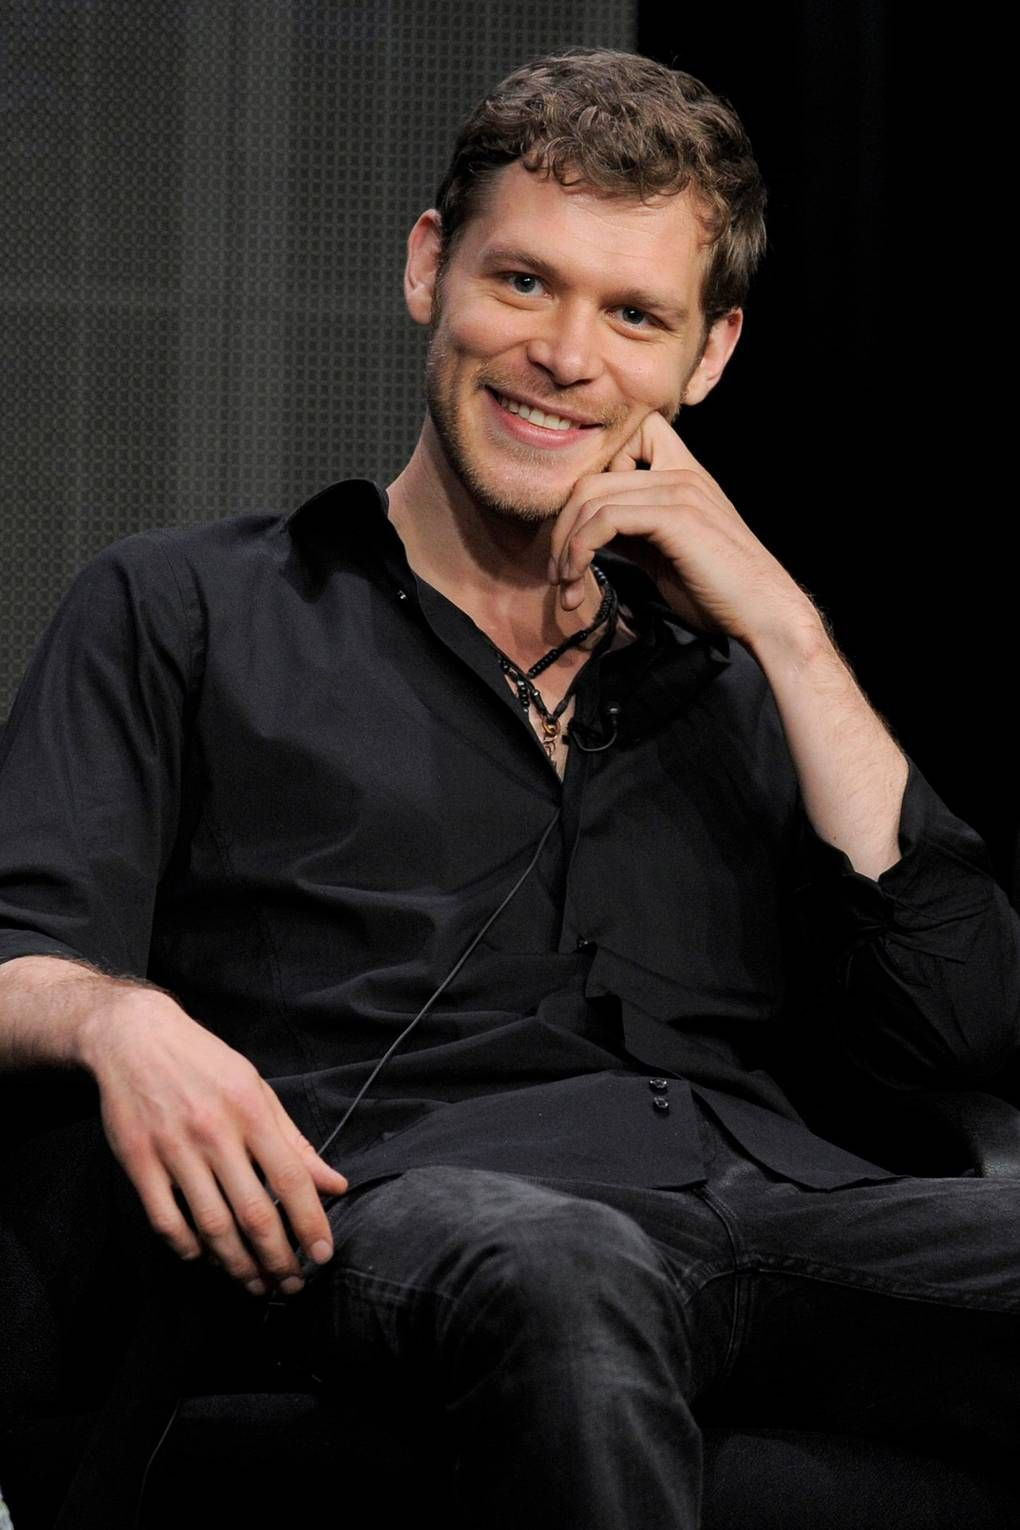 Originally from Swansea, this actor already has the film world at his feet, after appearances in [i]The Vampire Diaries[/i] and [i]Immortals[/i]. Now he has viewers obsessed with his role as Klaus Mikaelson in [i]The Originals[/i] - a [i]Vampire Diaries[/i] spin-off.